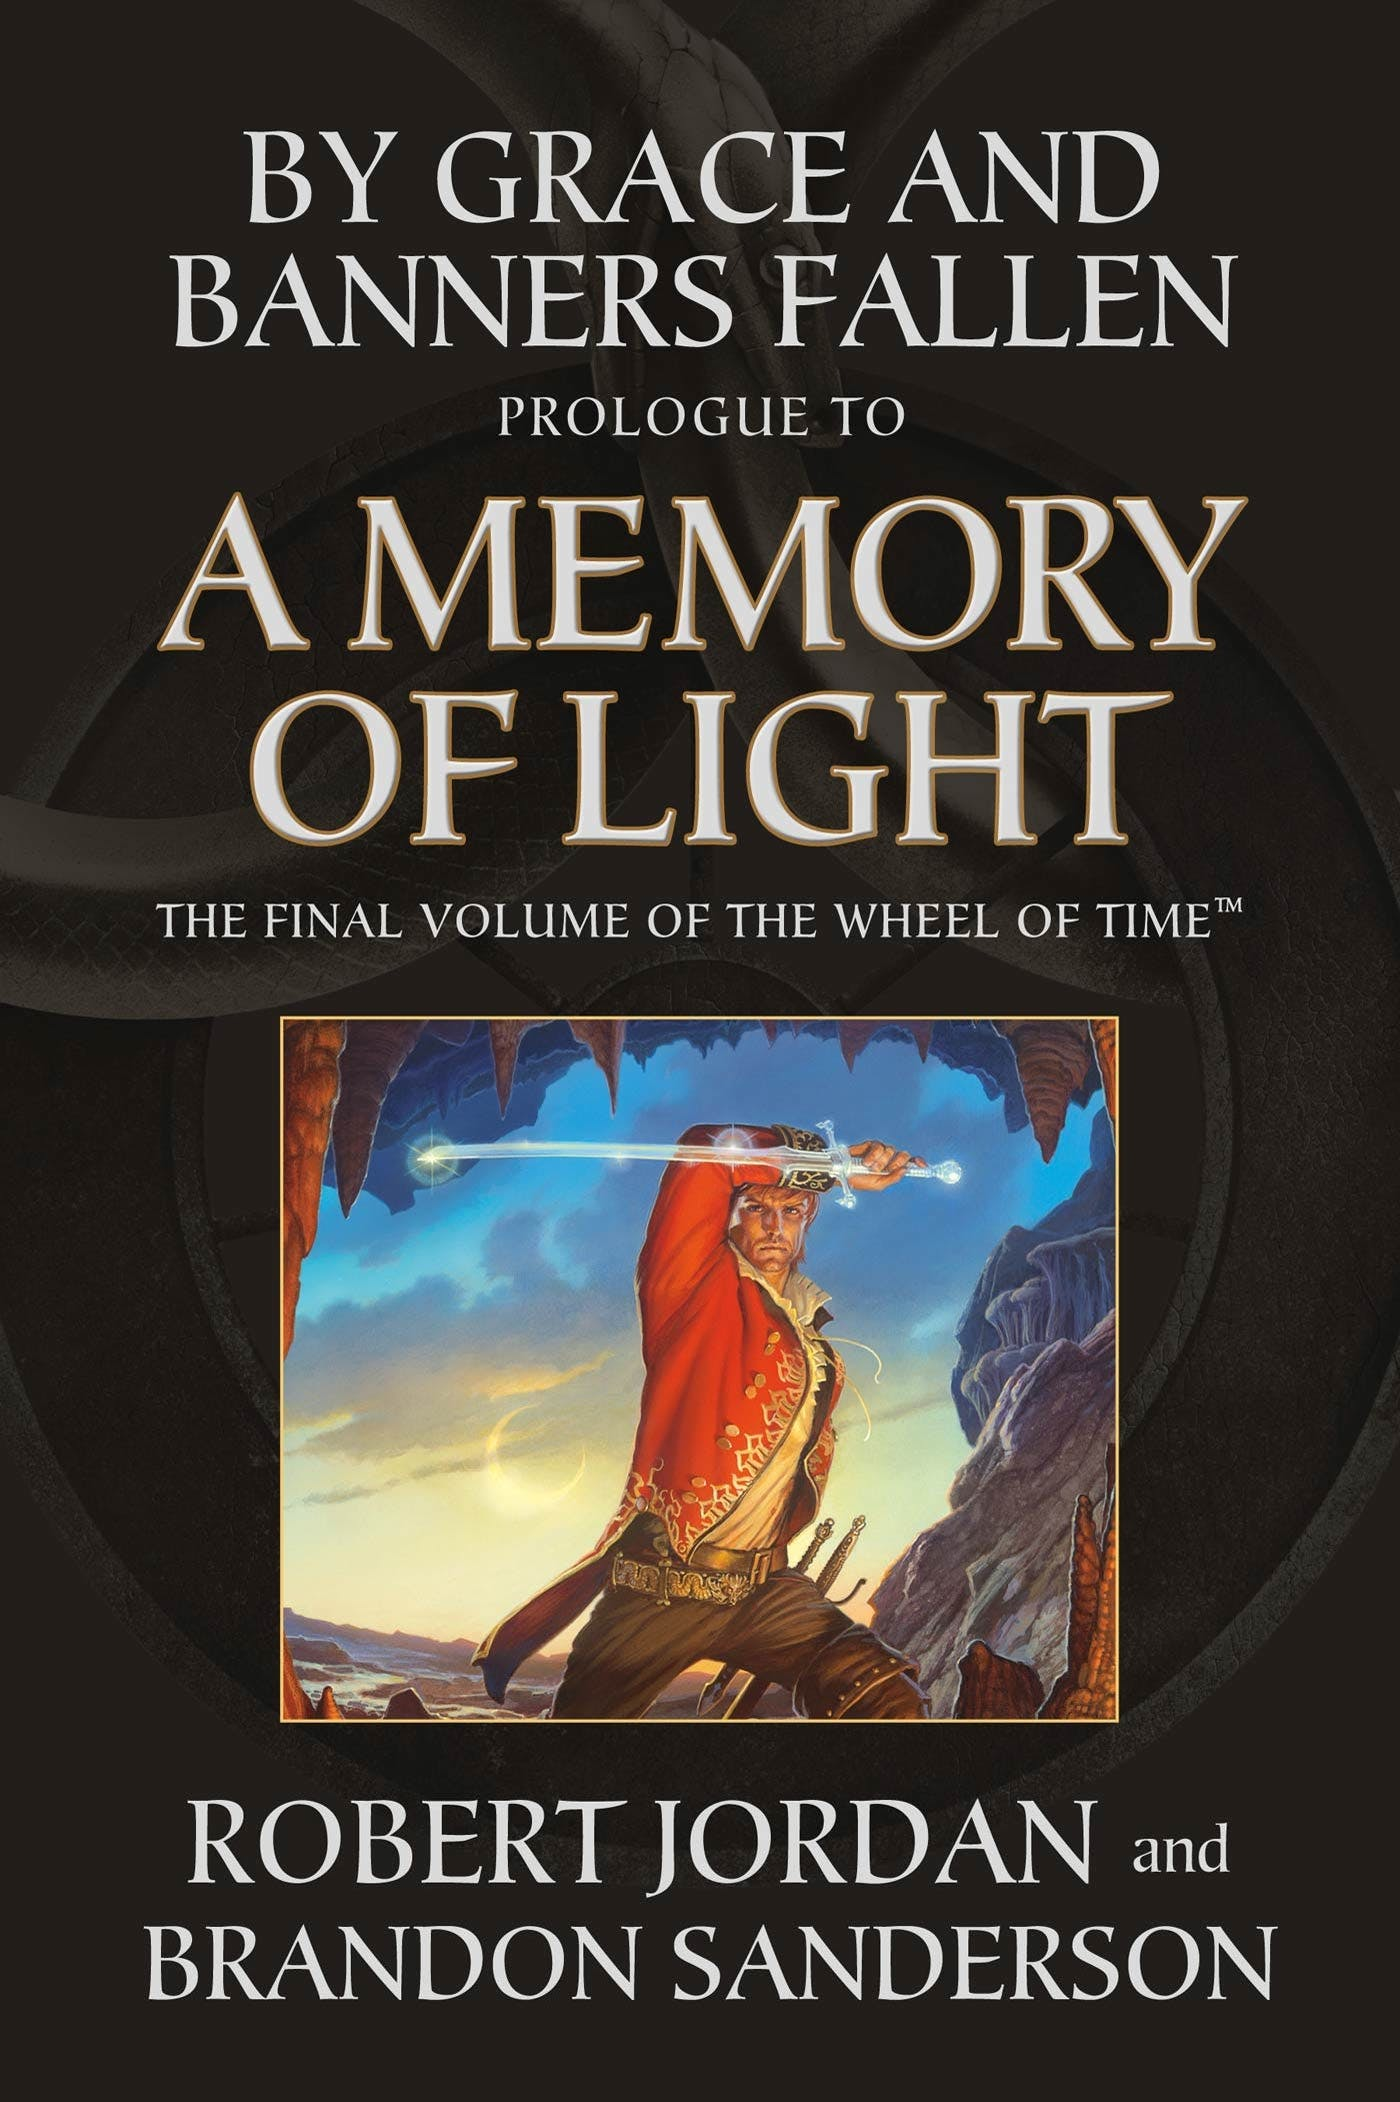 Image of By Grace and Banners Fallen: Prologue to A Memory of Light